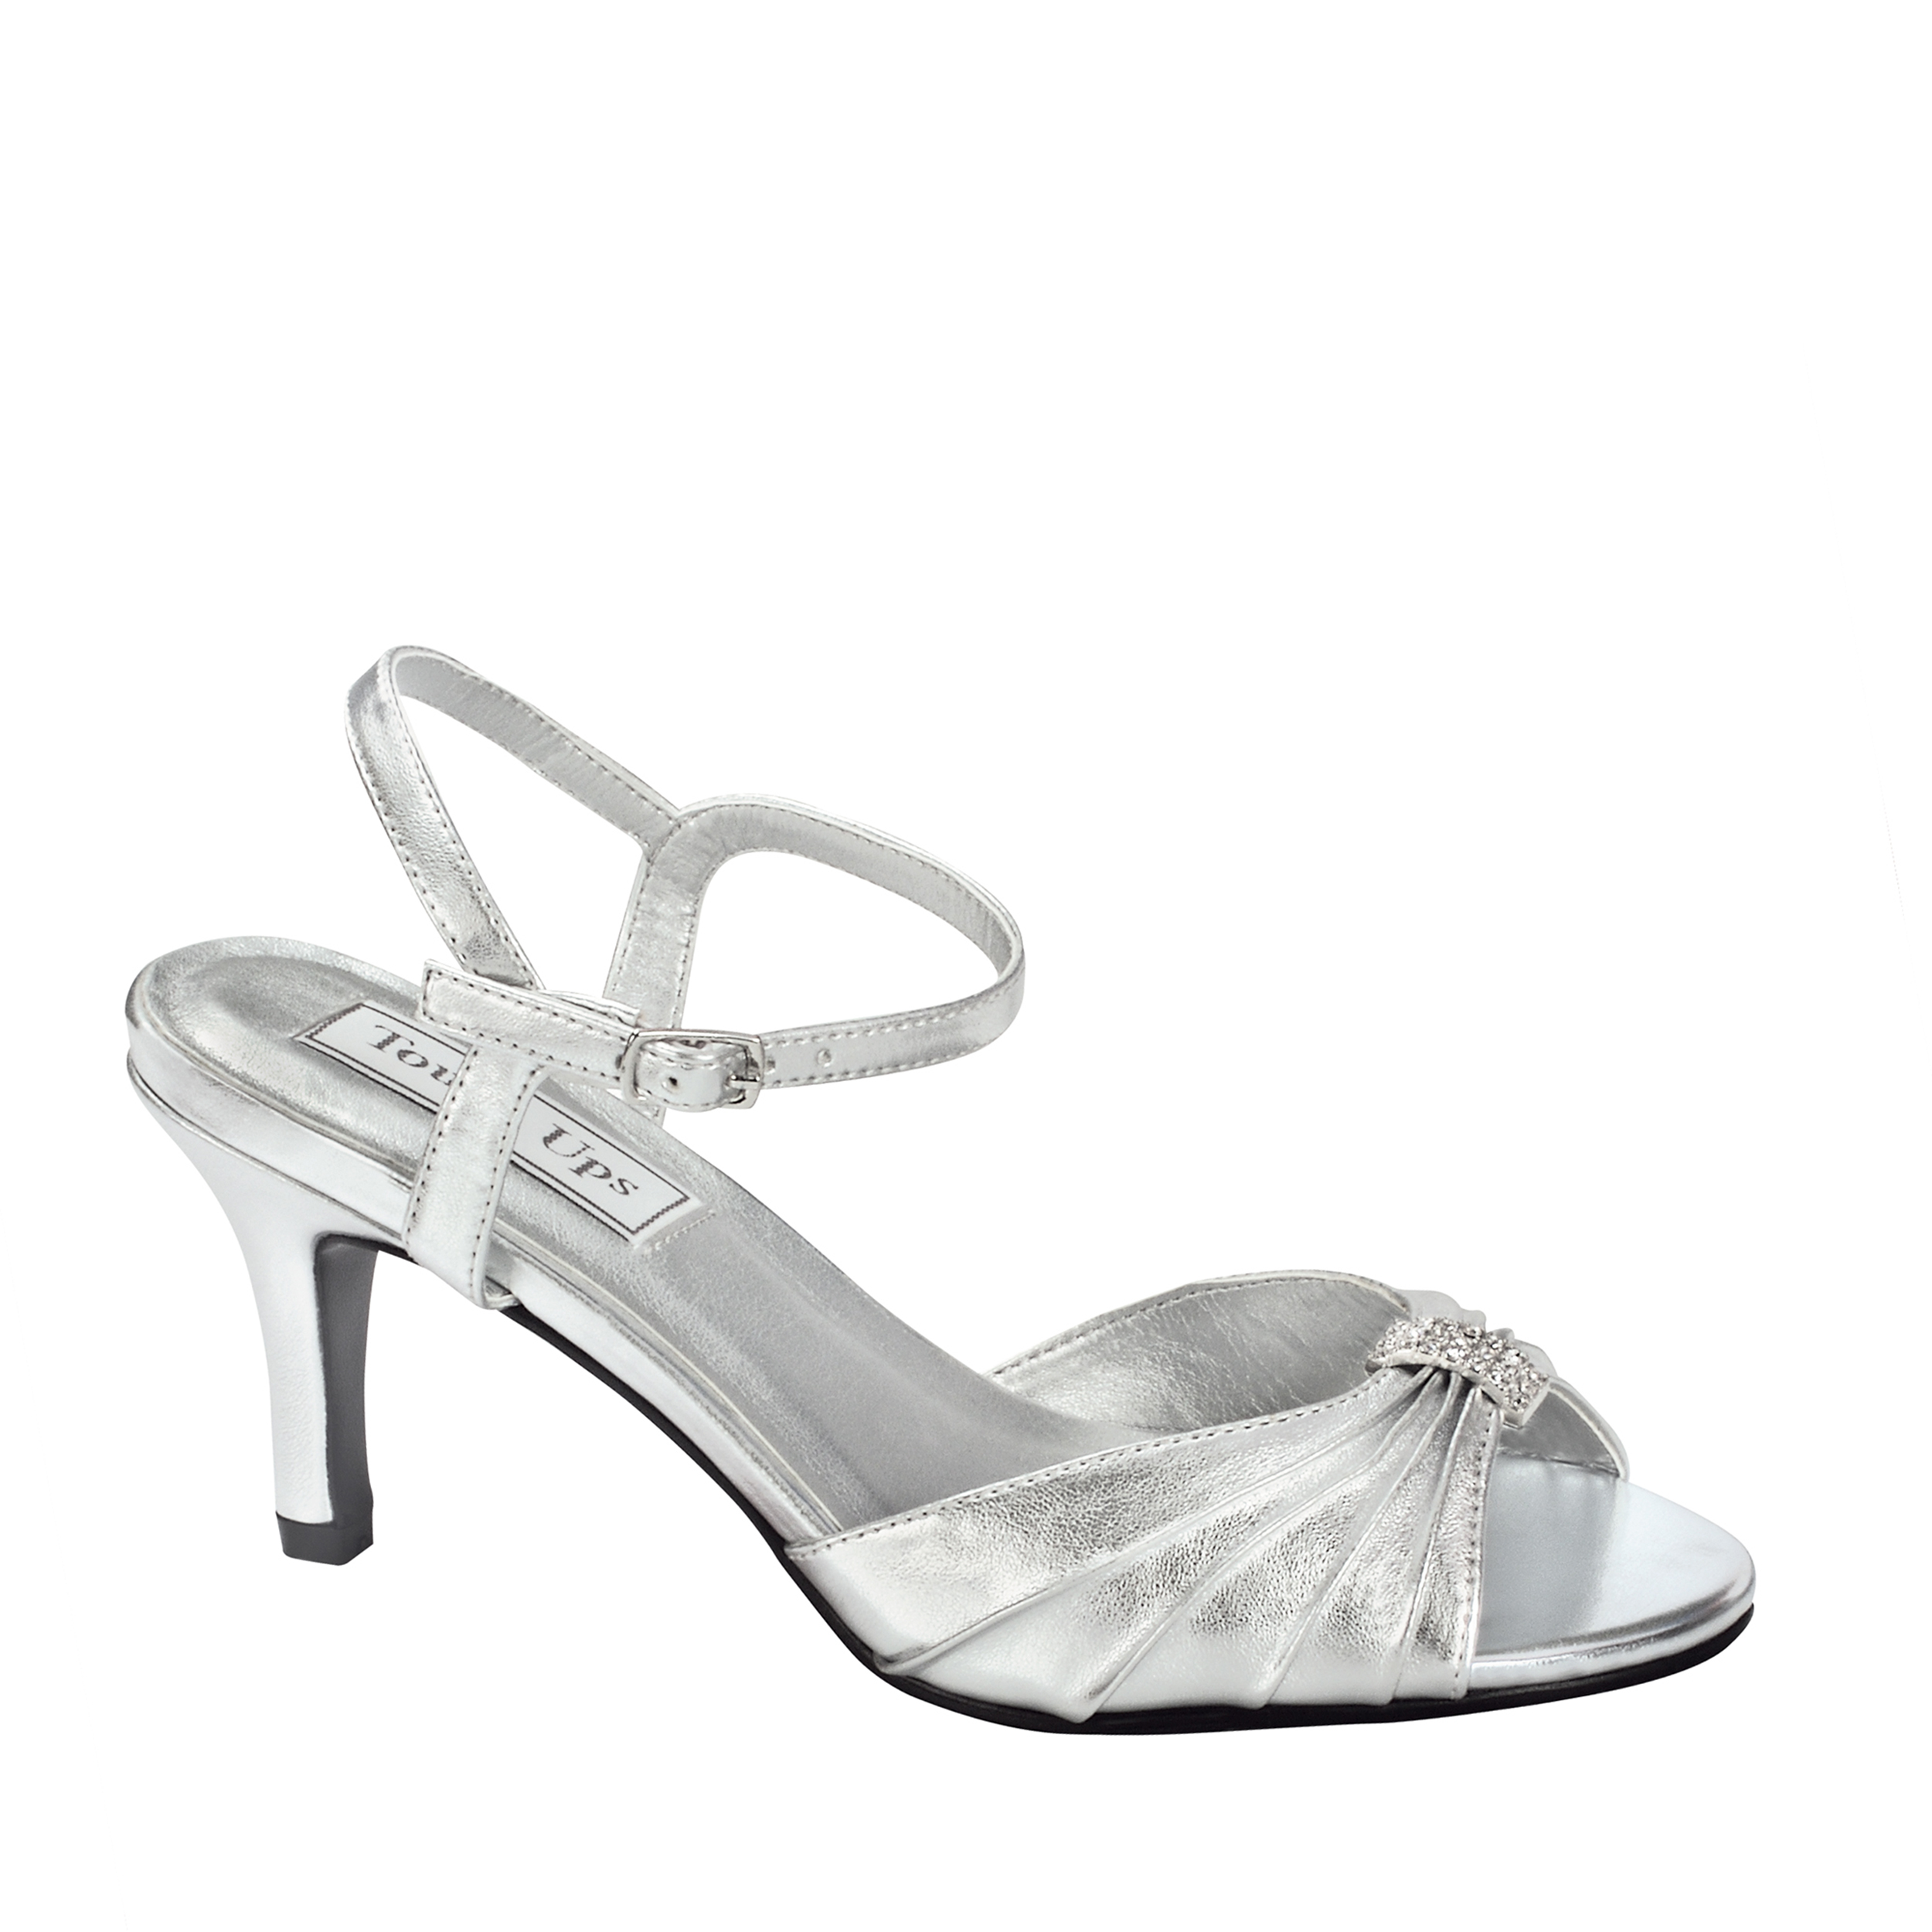 Touch Ups Womens Asher Ankle Wrap Sandal,Silver,8 M US